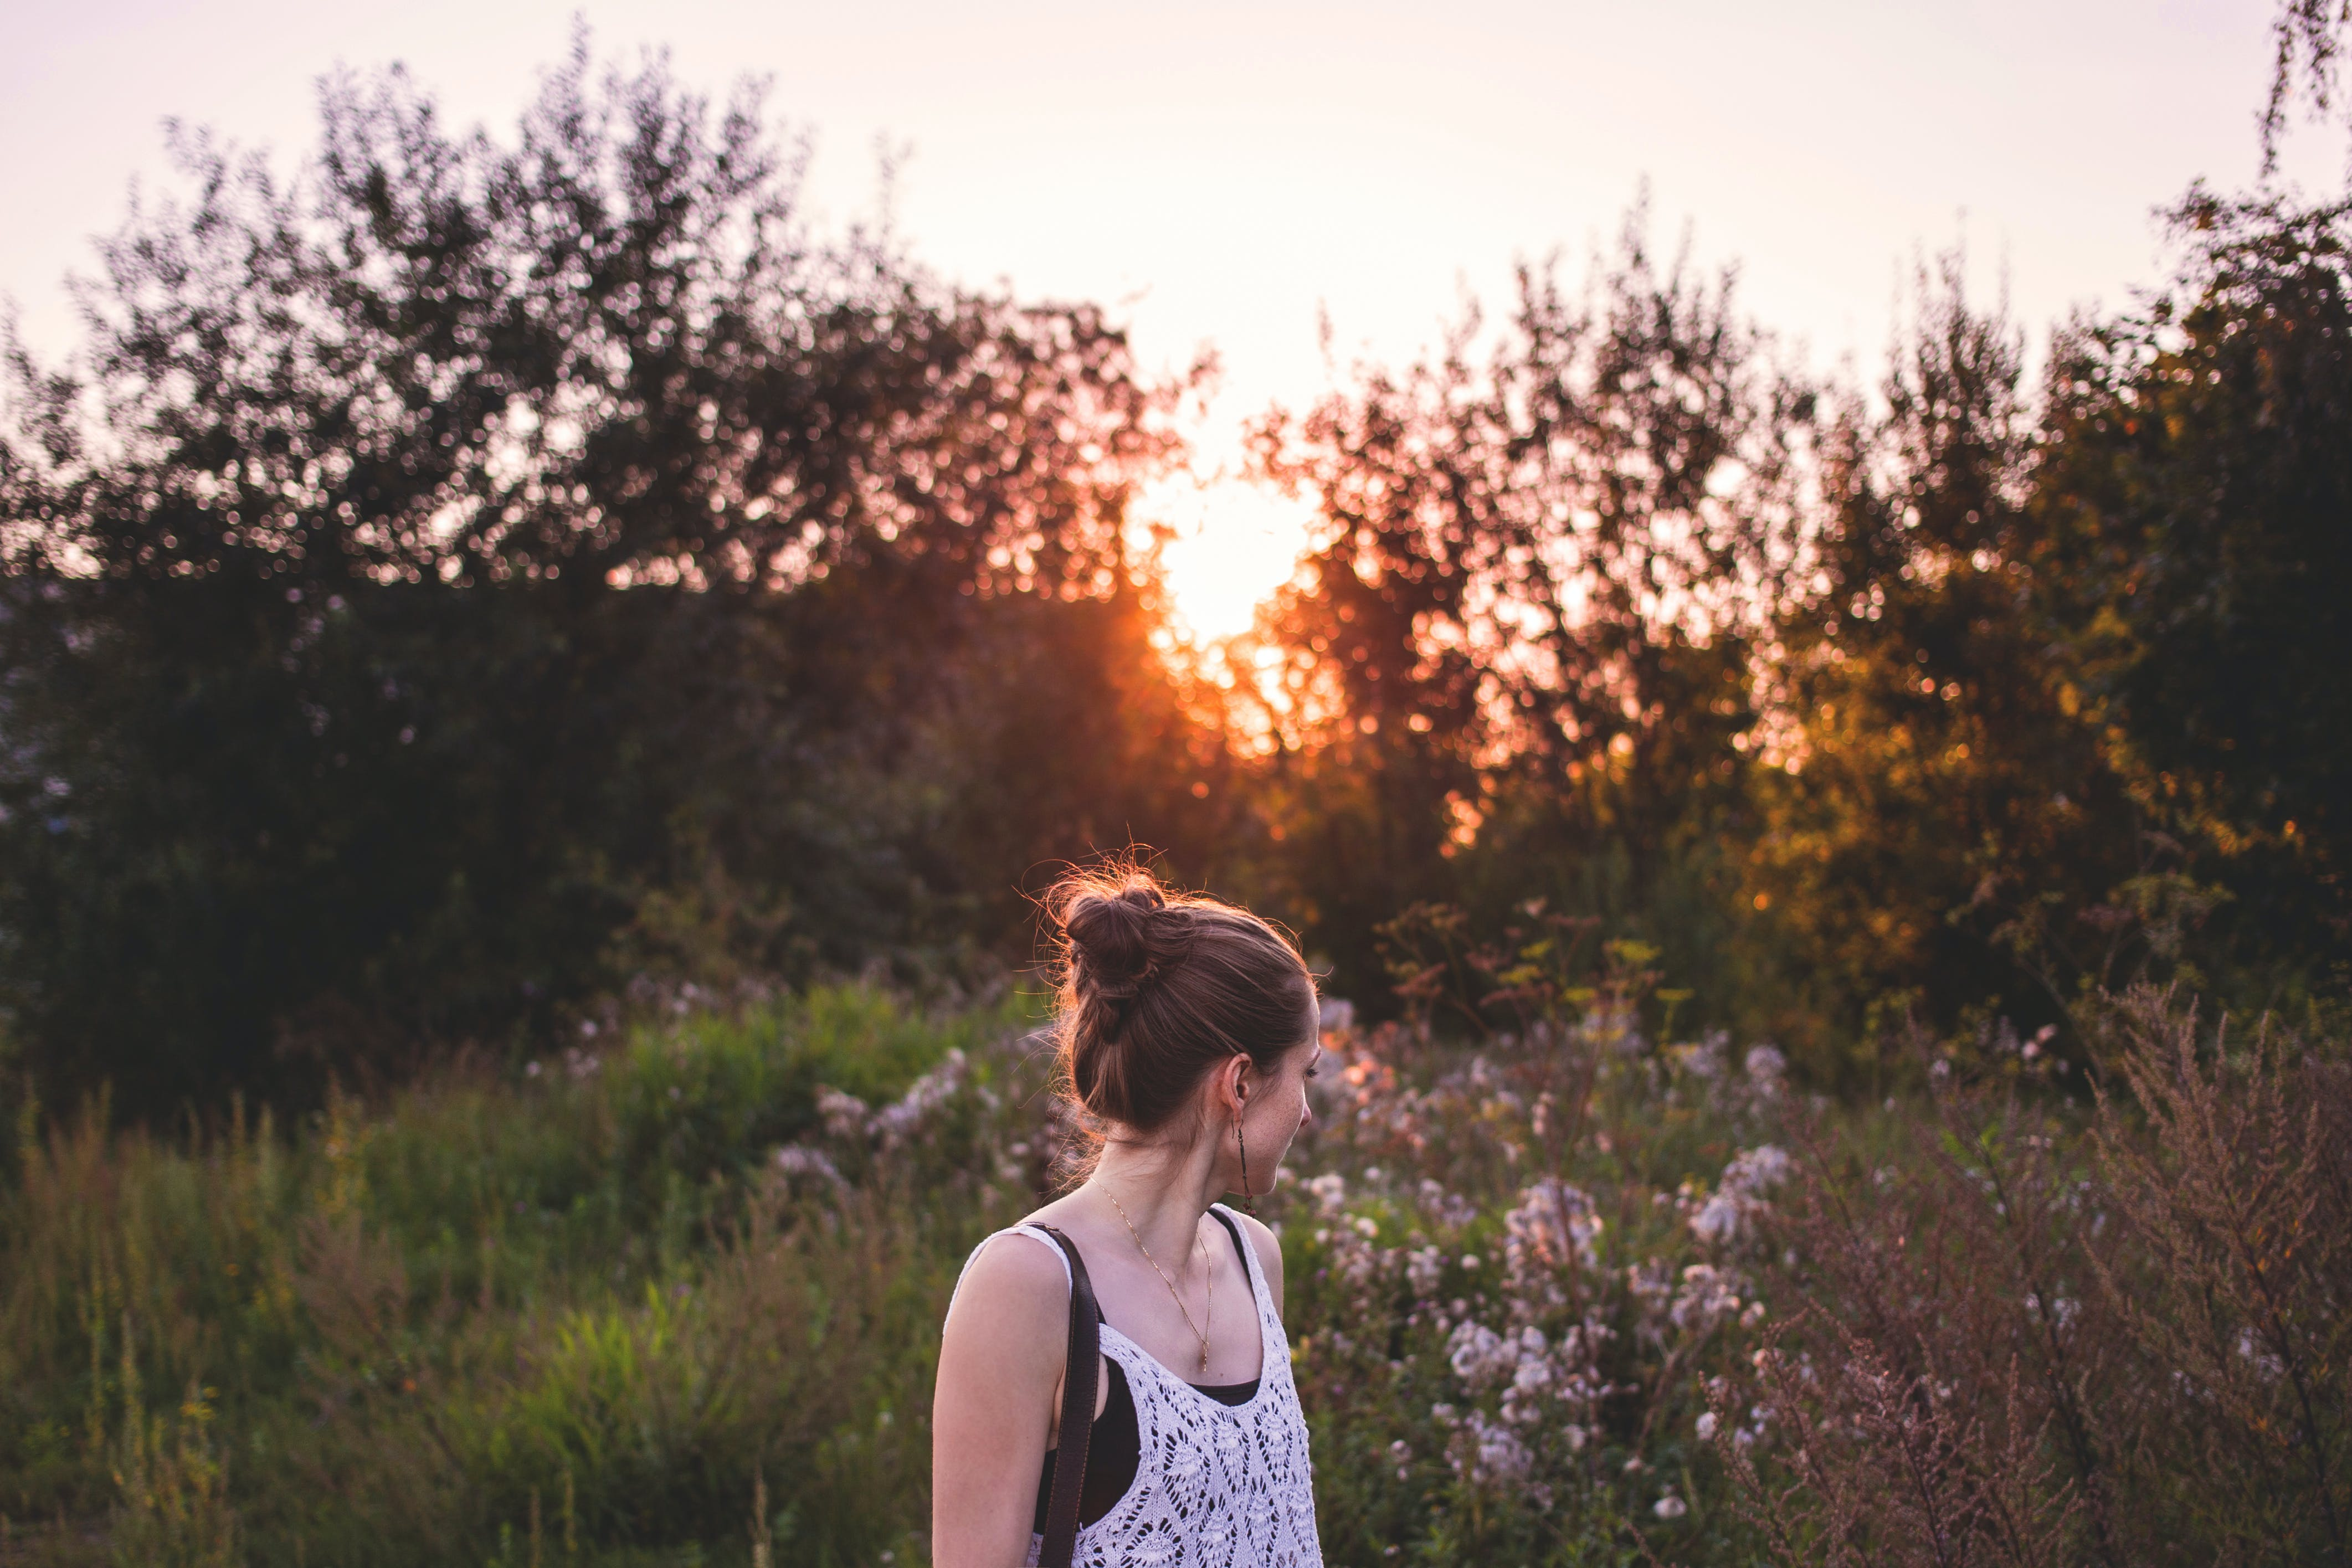 Selective Focus Photography of Woman Standing in the Middle of Grasses and Flowers during Golden Hour